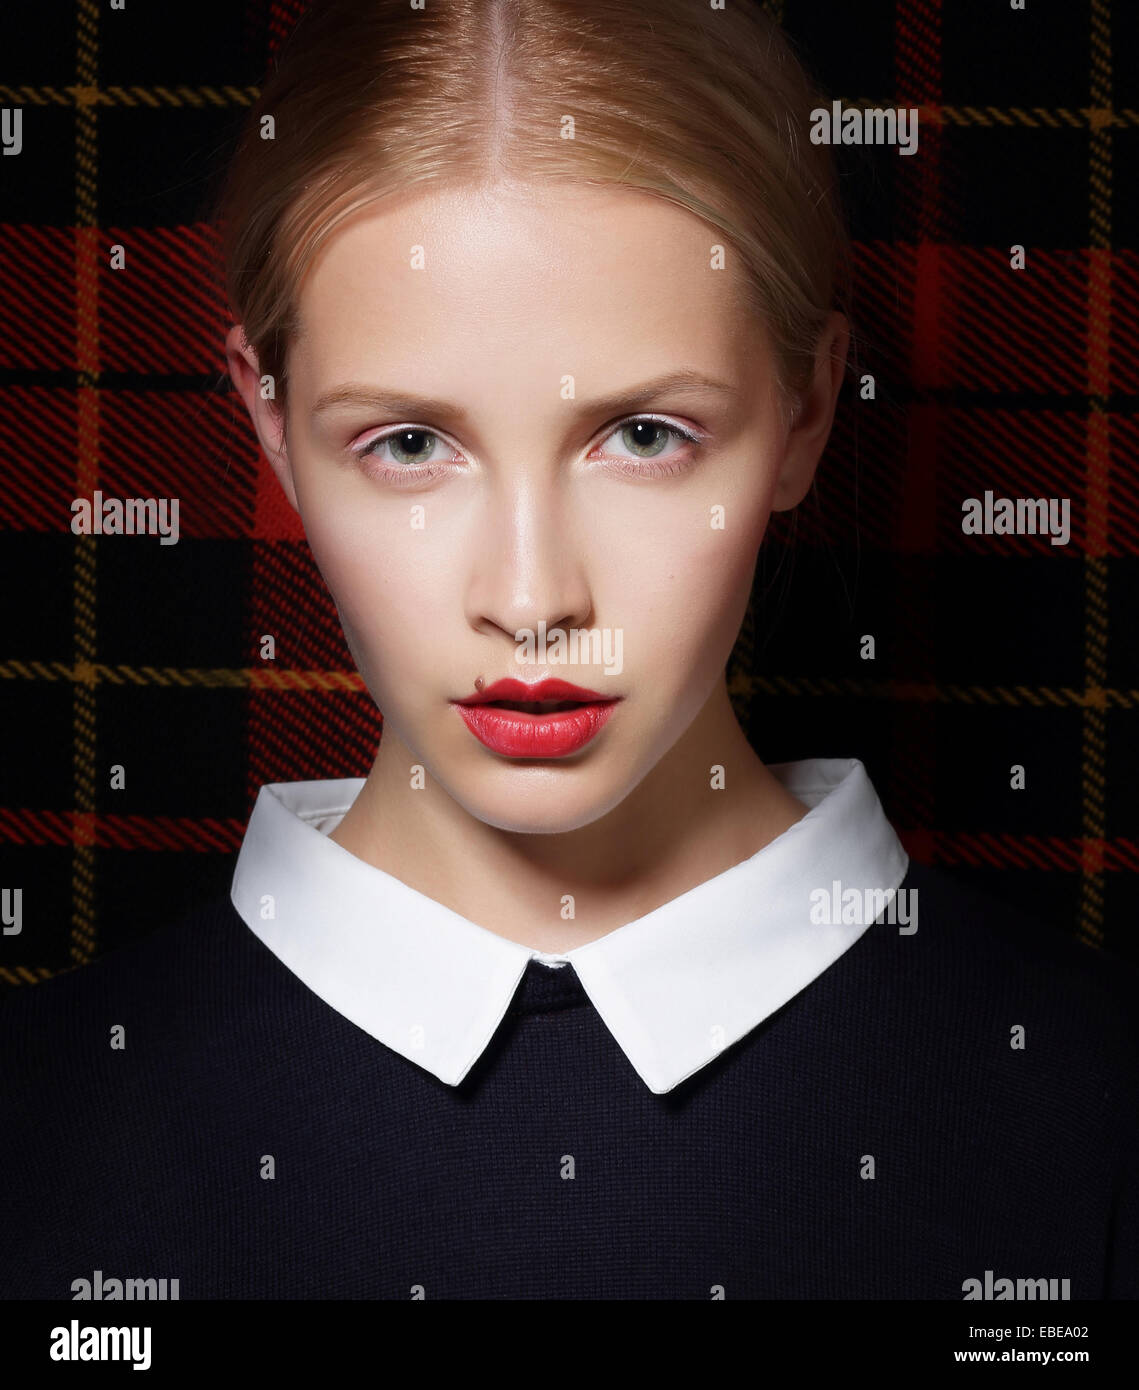 Stylish Charismatic Female with White Collar - Stock Image